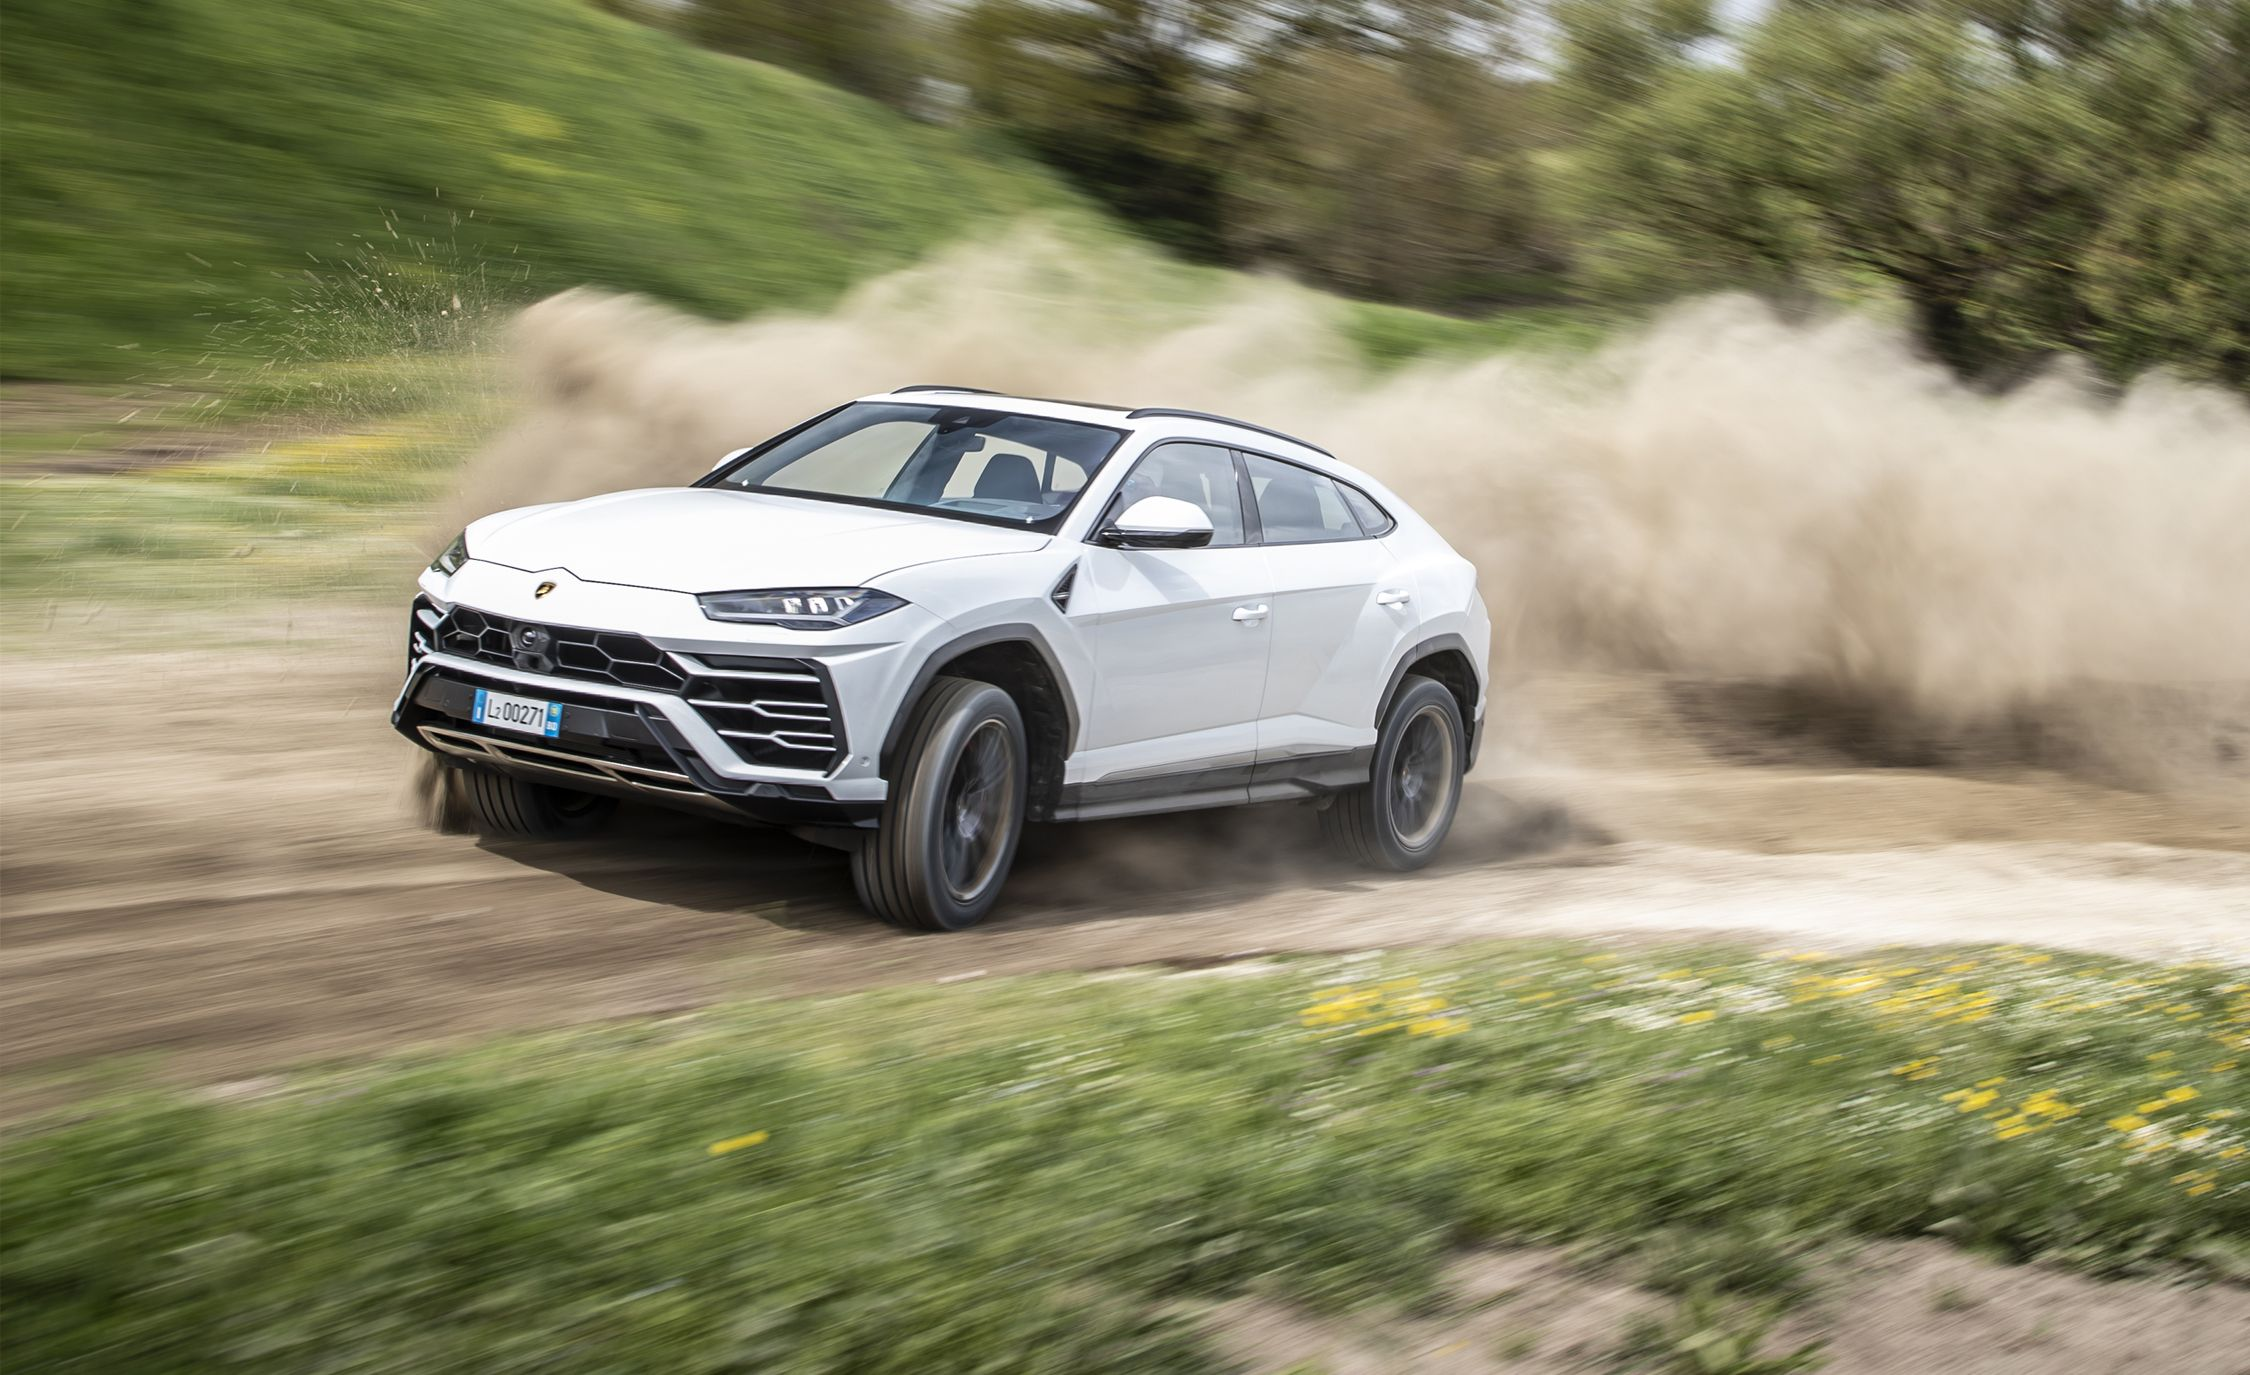 2019 Lamborghini Urus Reviews Lamborghini Urus Price Photos And